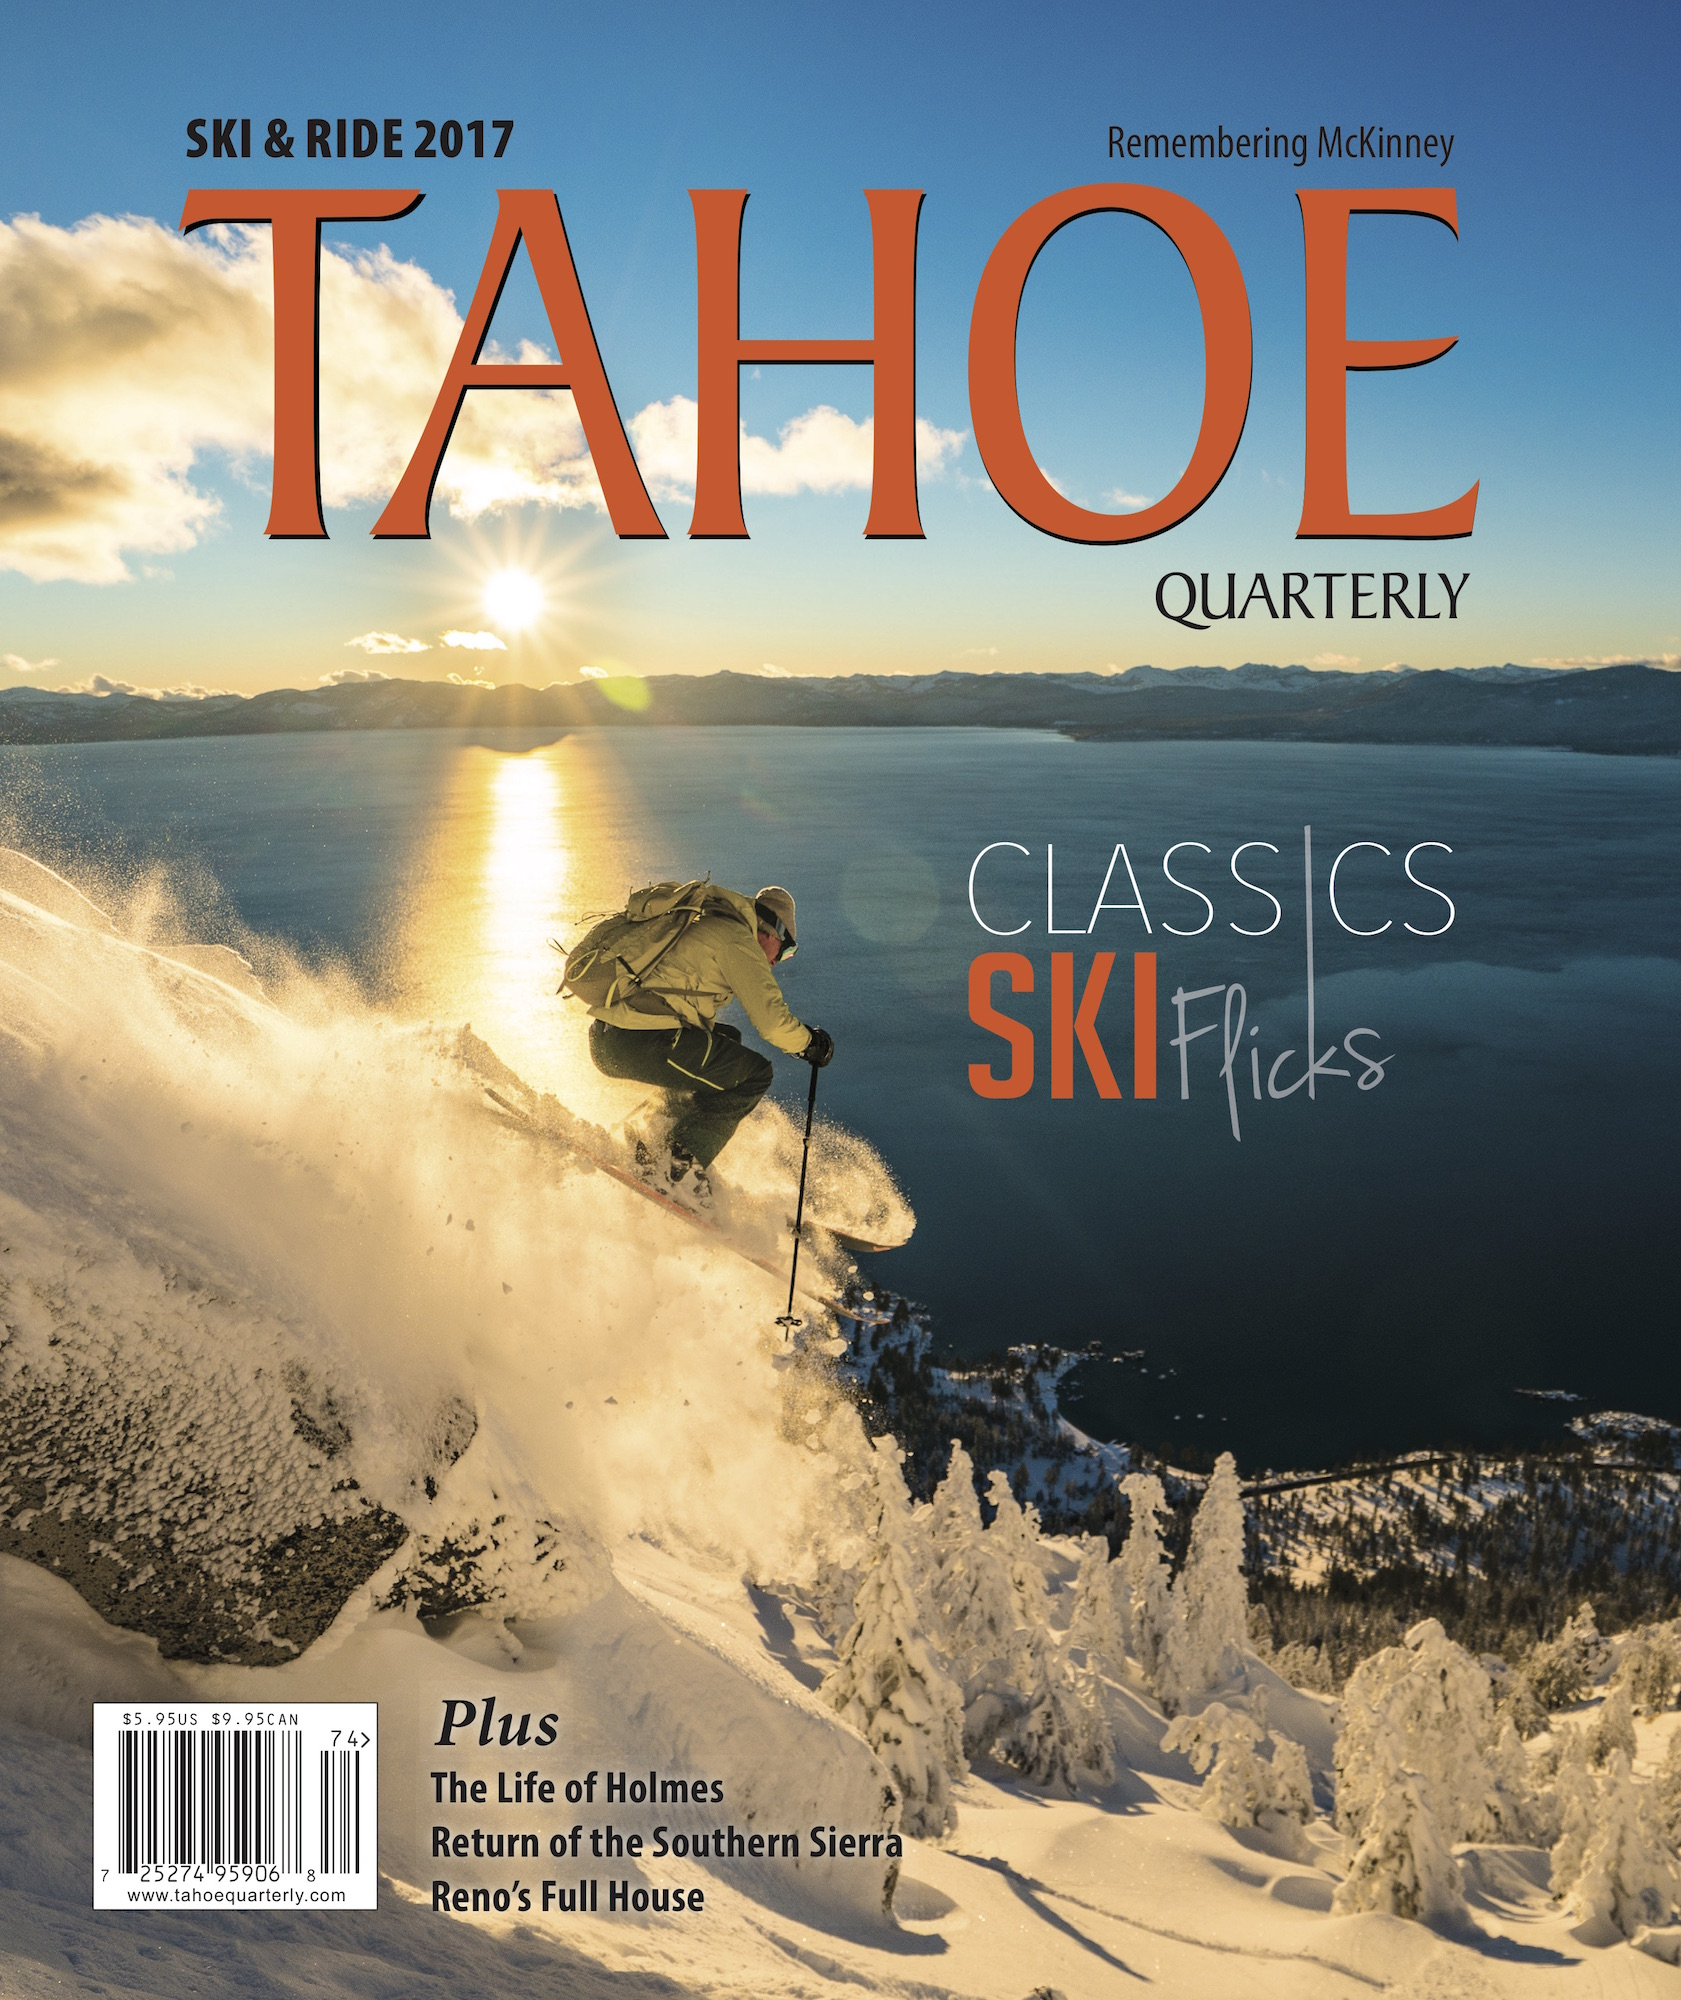 TAHOE QUARTERLY - Tahoe Quarterly Magazine's Ski and Ride 2017 issue, Ahead of the Curve, features this stunning mountain modern home designed by Kelly and Stone Architects with interiors by Emily Esposito.